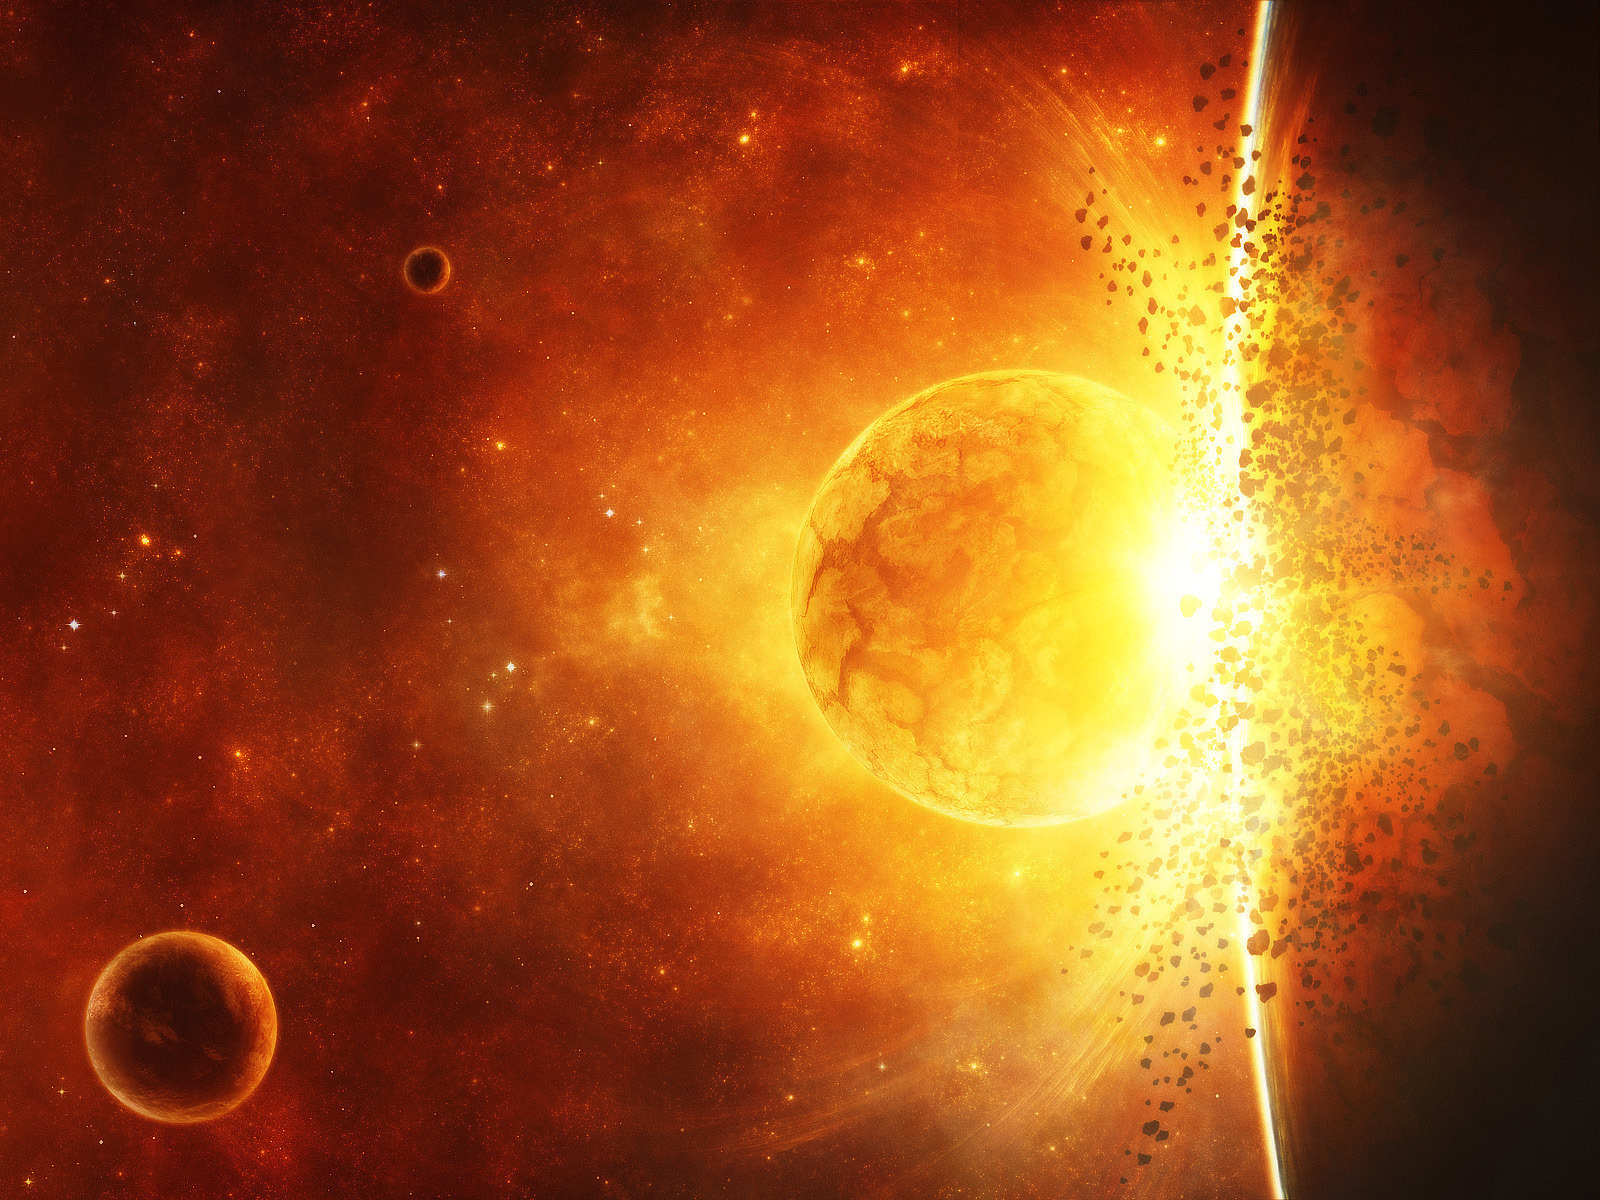 exploding planets wallpapersfor laptops - photo #33